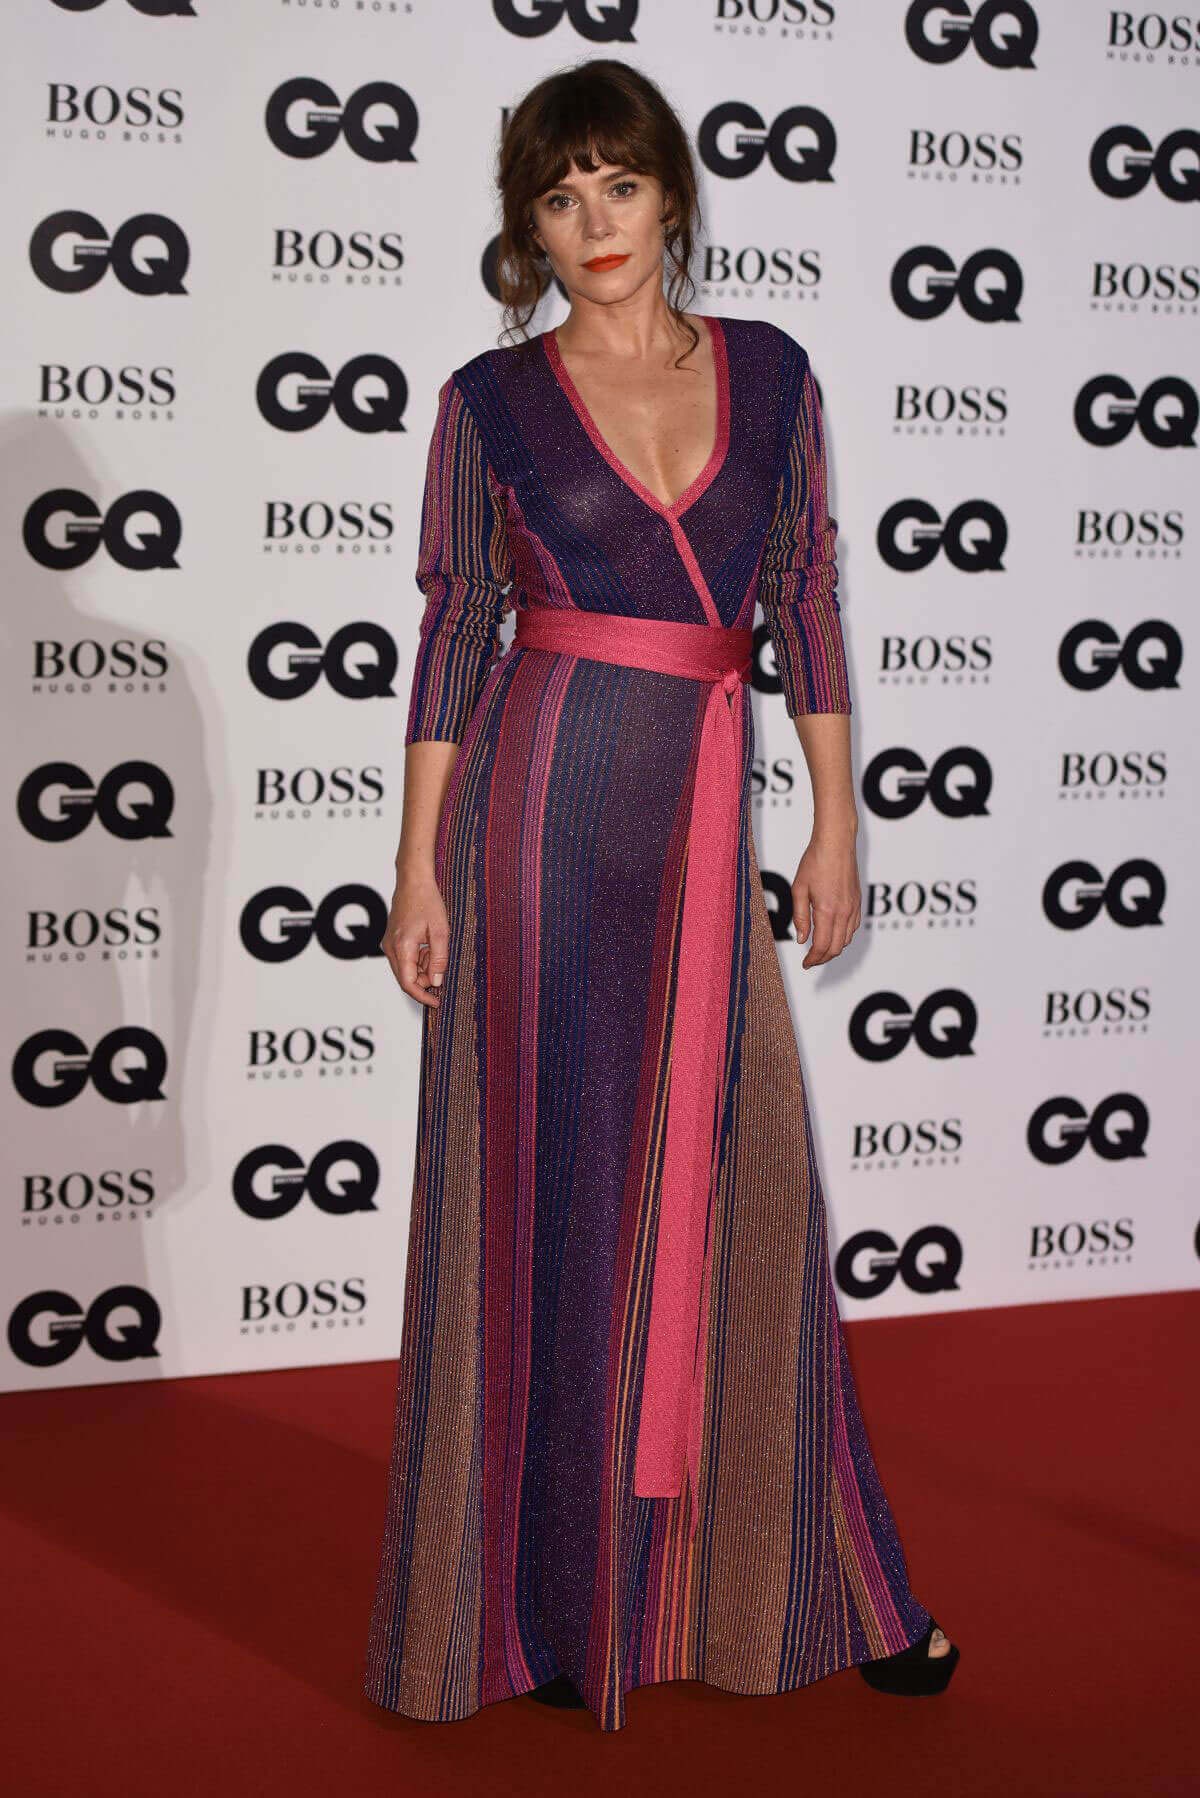 Anna Friel Stills at GQ Men of the Year Awards 2017 in London